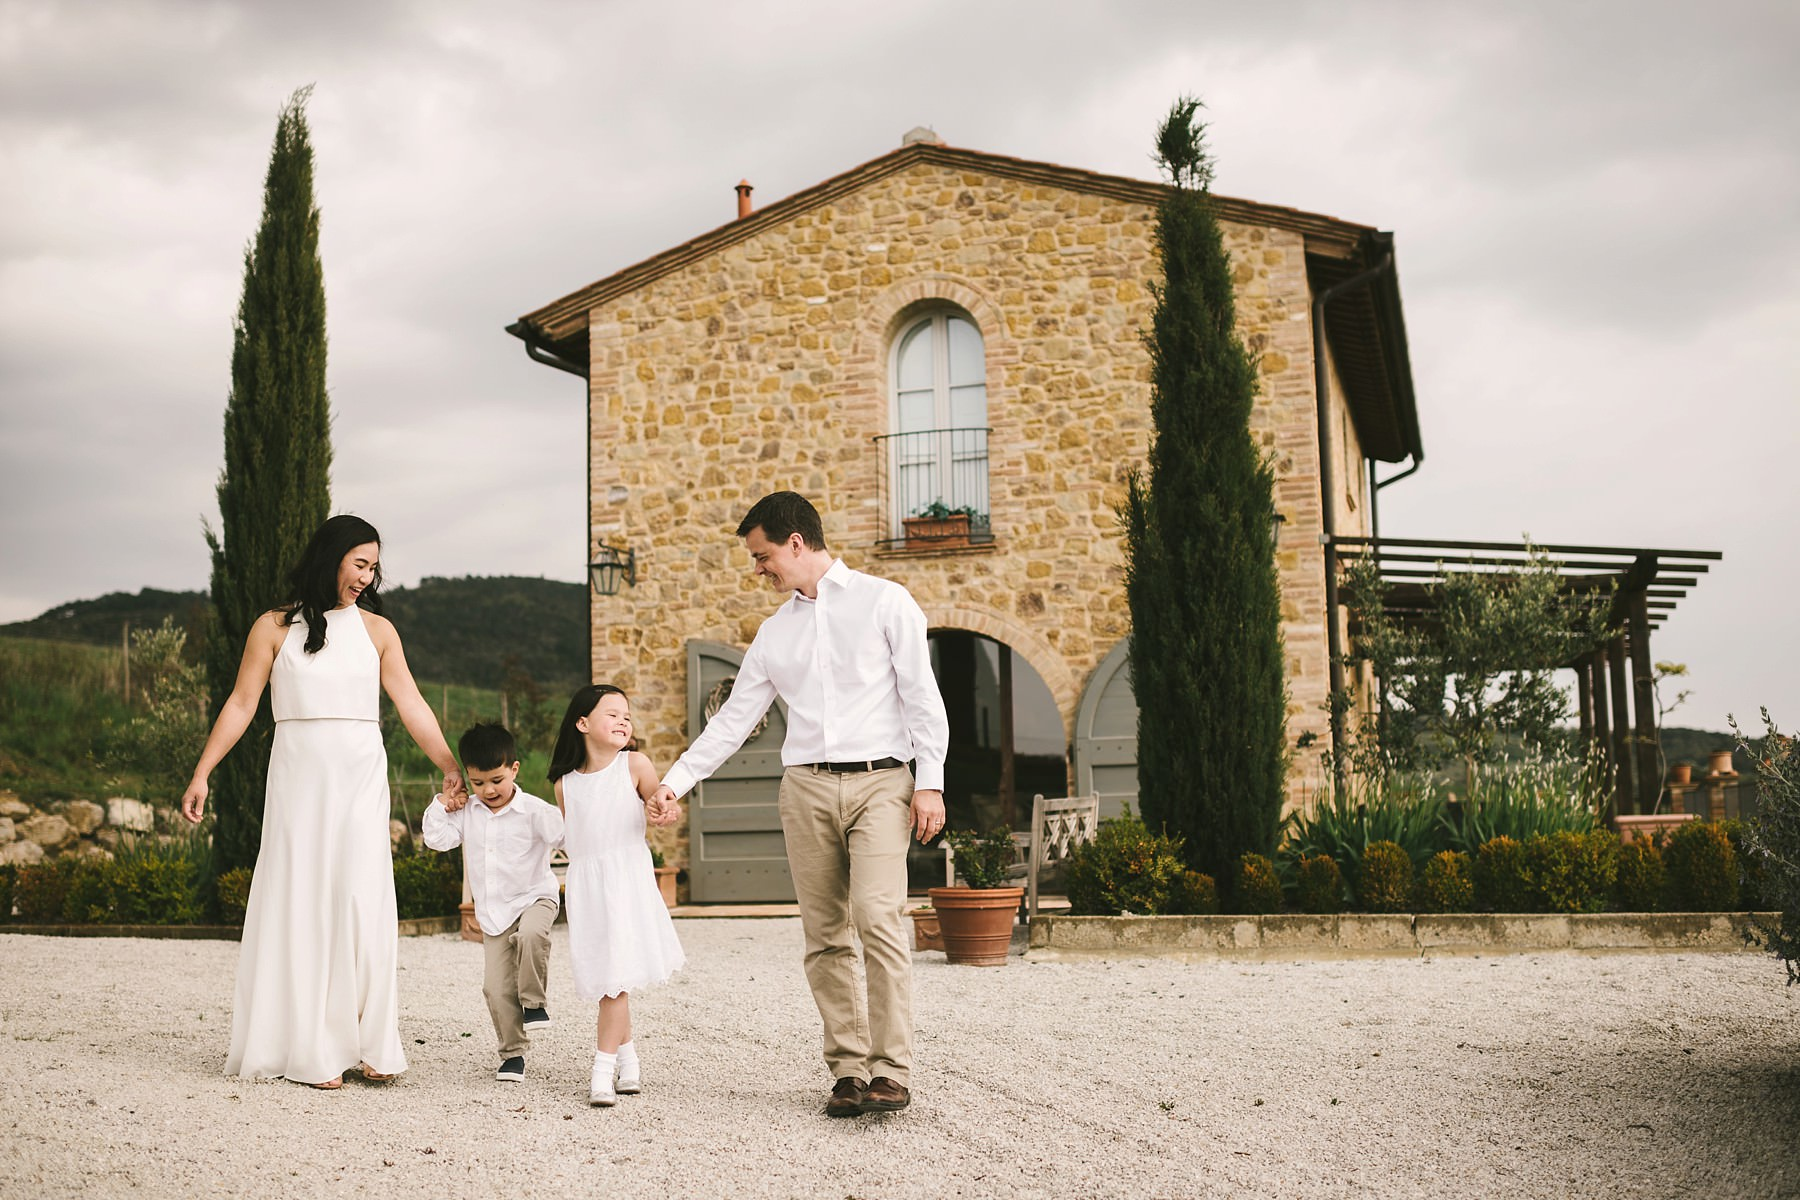 Exciting family photo session in Tuscany during a vacation. Walk in the private Villa